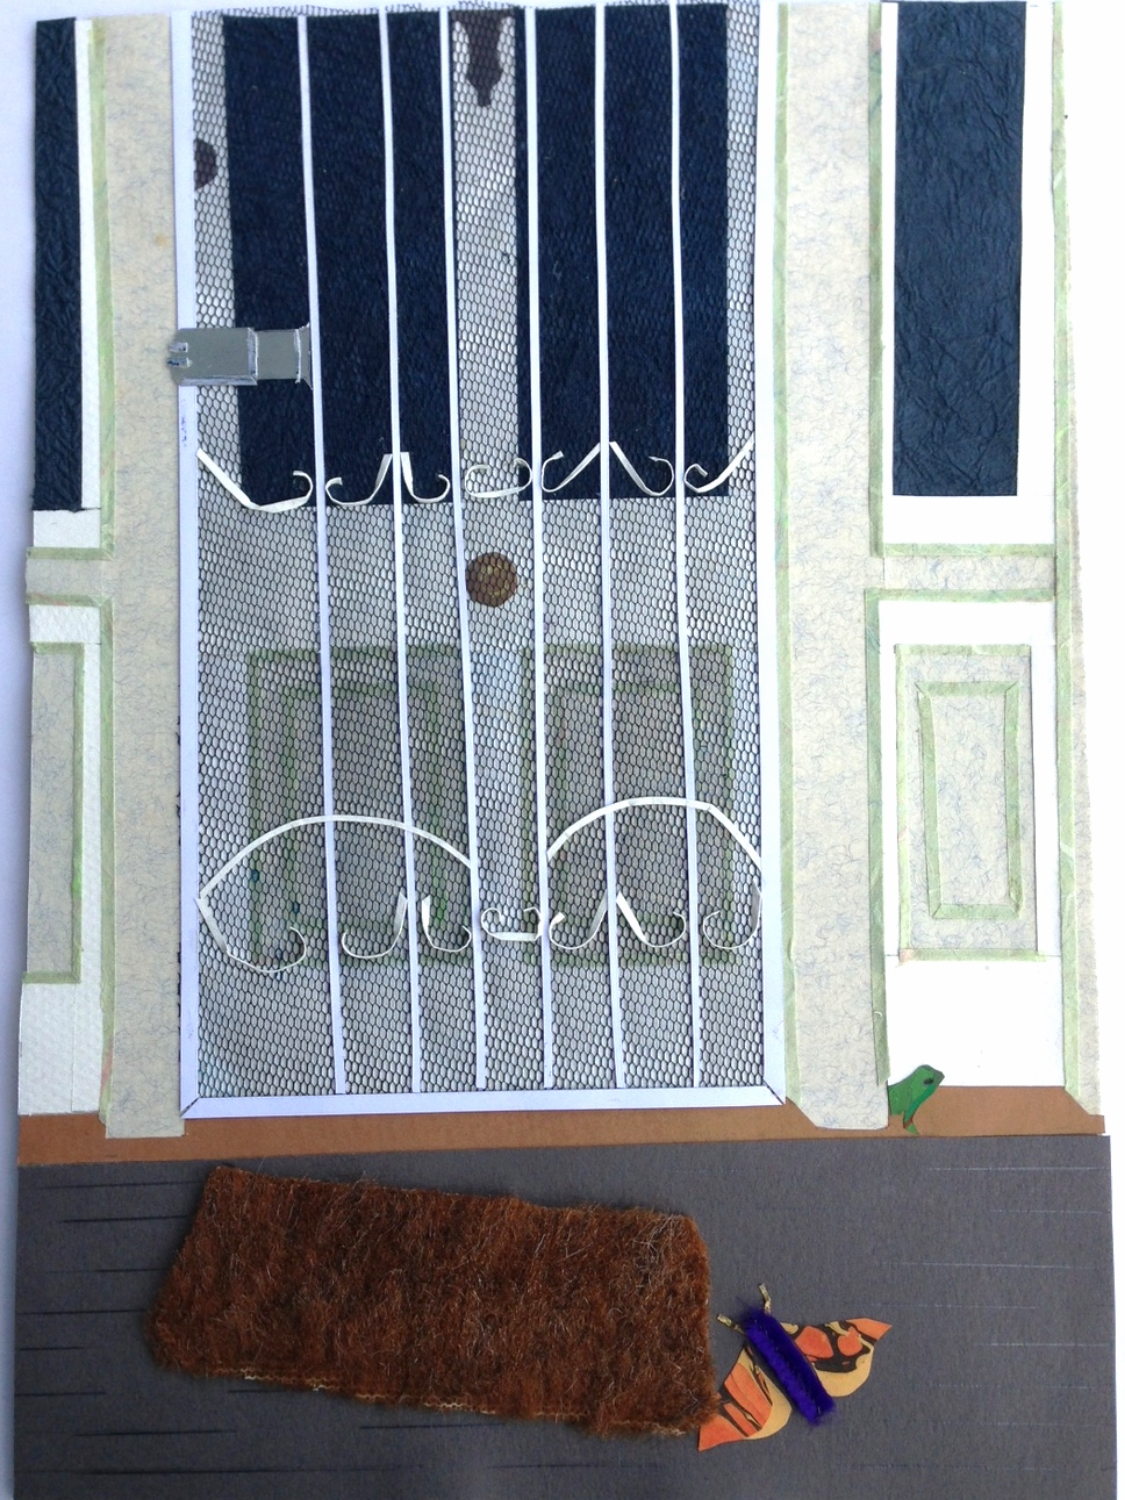 At My House . Paper cuts andoriginal collage for children'sbook illustration.2001 © Ida Montague.